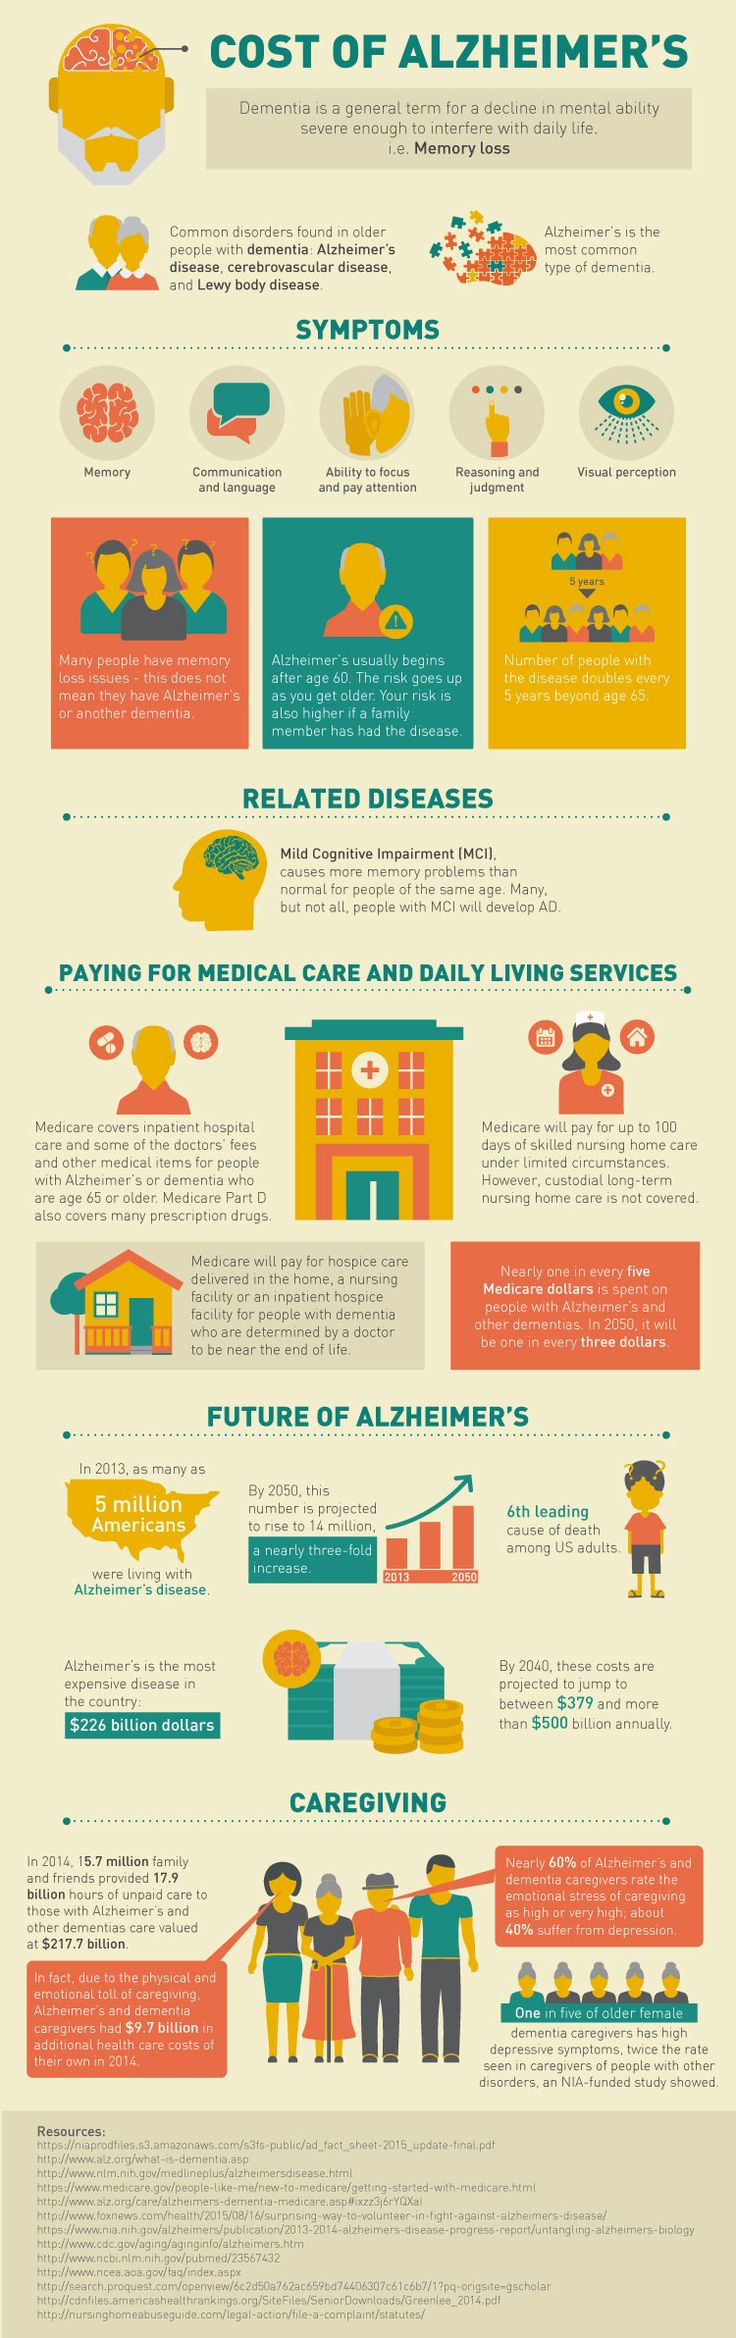 The cost of Alzheimer's and how expert witnesses will be used for both caregivers and victims of elder abuse #infographic #expertwitness